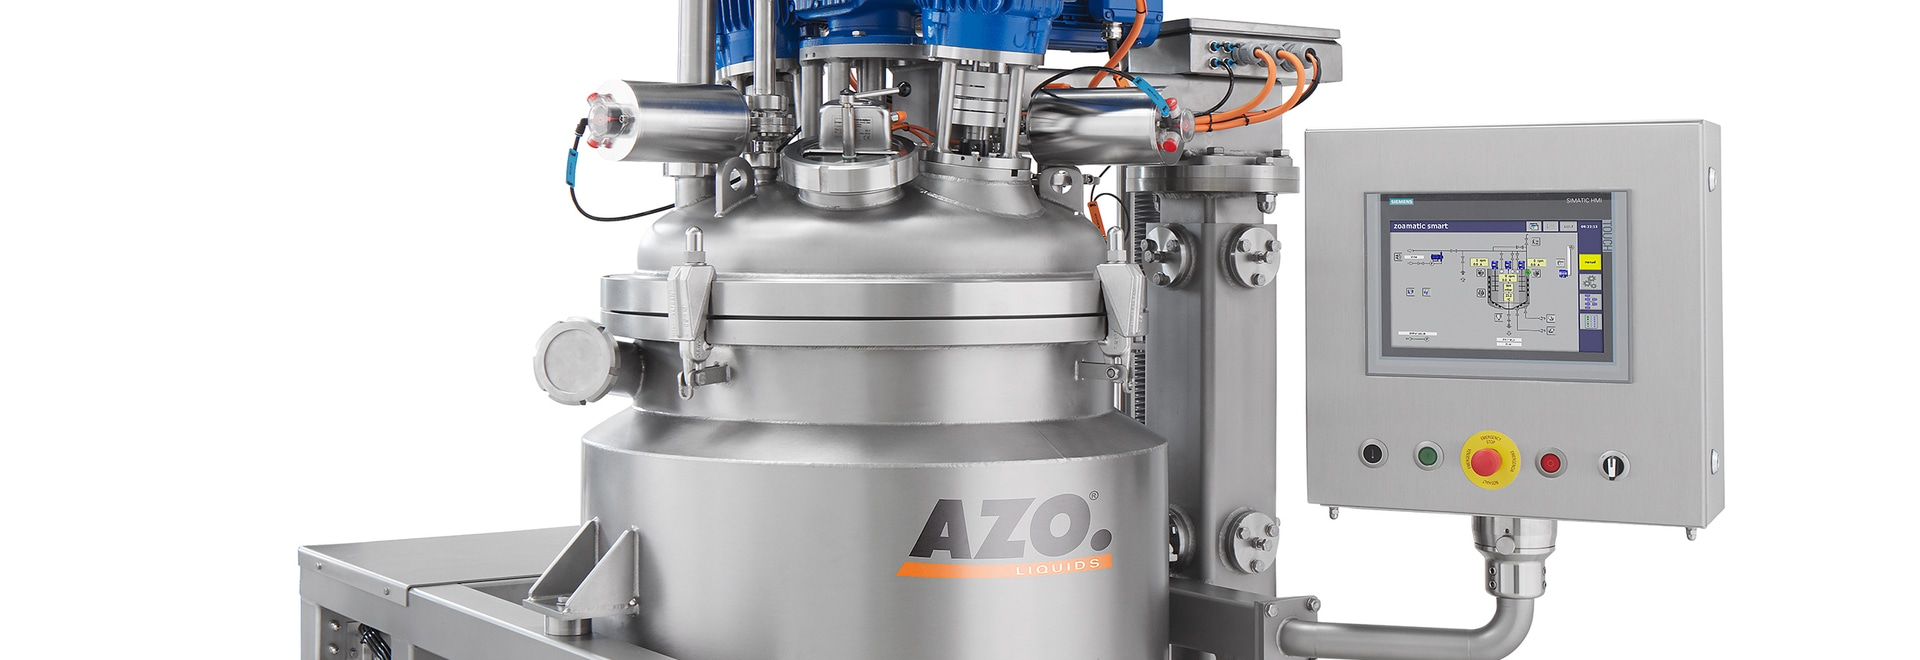 AZO dough mixers are versatile and can be used to manufacture wet doughs, pre-ferments and sourdoughs